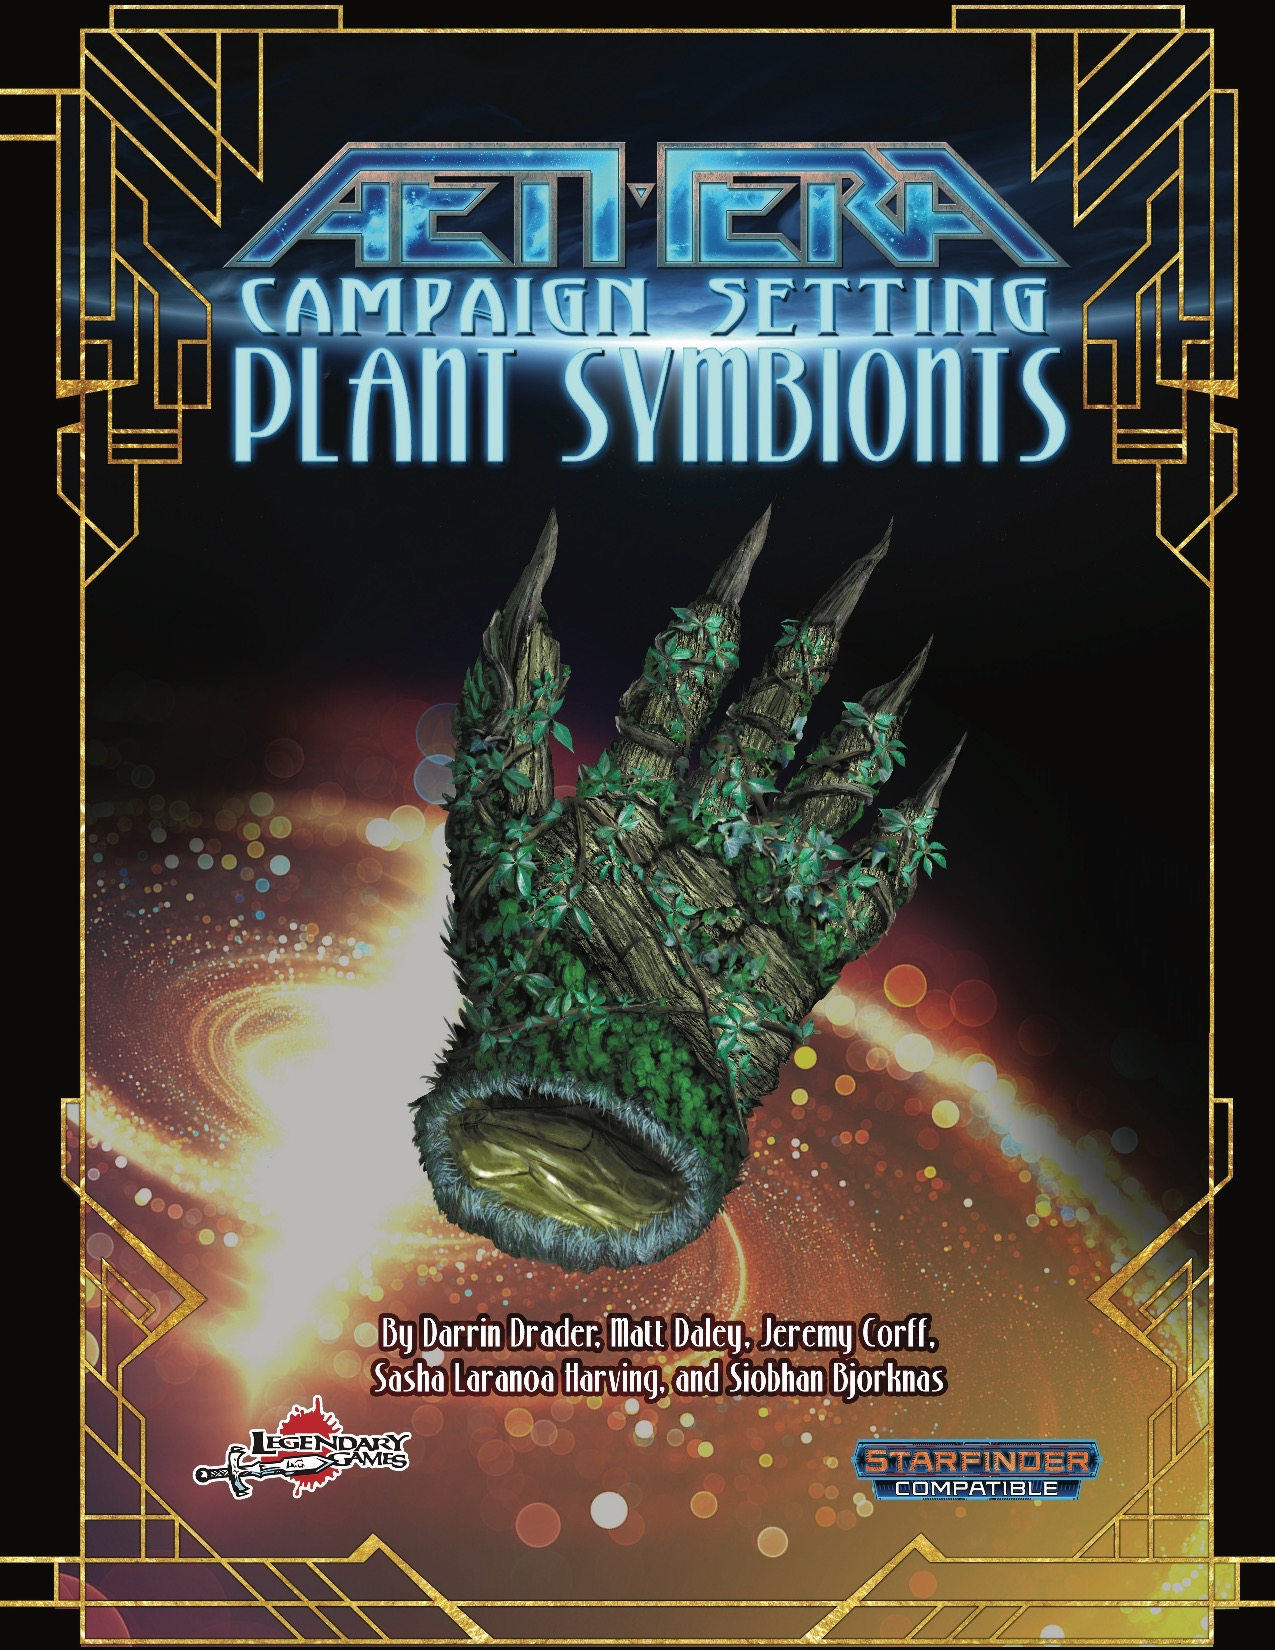 Plant Symbionts PDF: cover faetured a floating hand made of plant matter